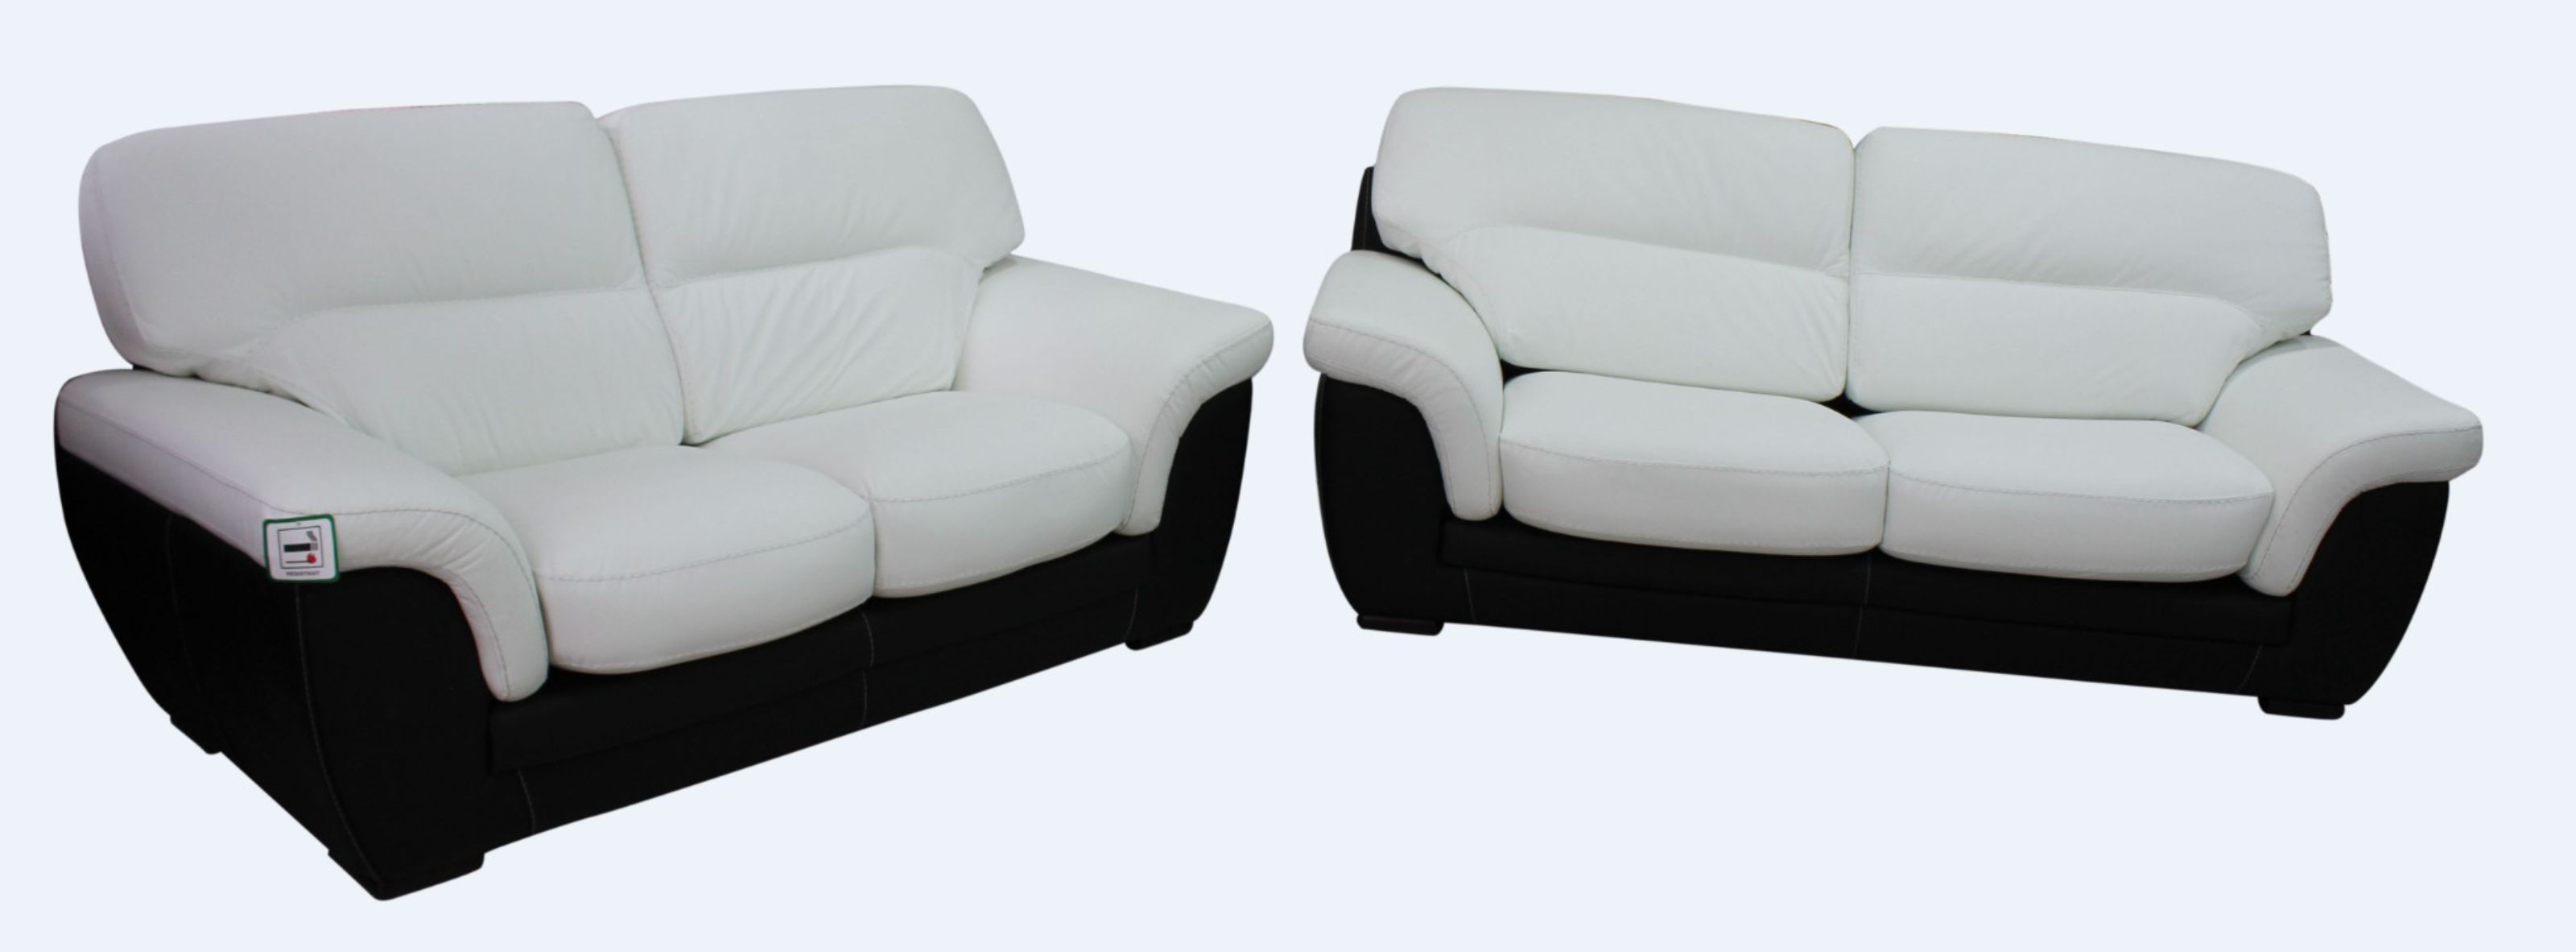 Peachy Daniel 3 2 Contemporary Italian Leather Sofa Suite Black White Inzonedesignstudio Interior Chair Design Inzonedesignstudiocom